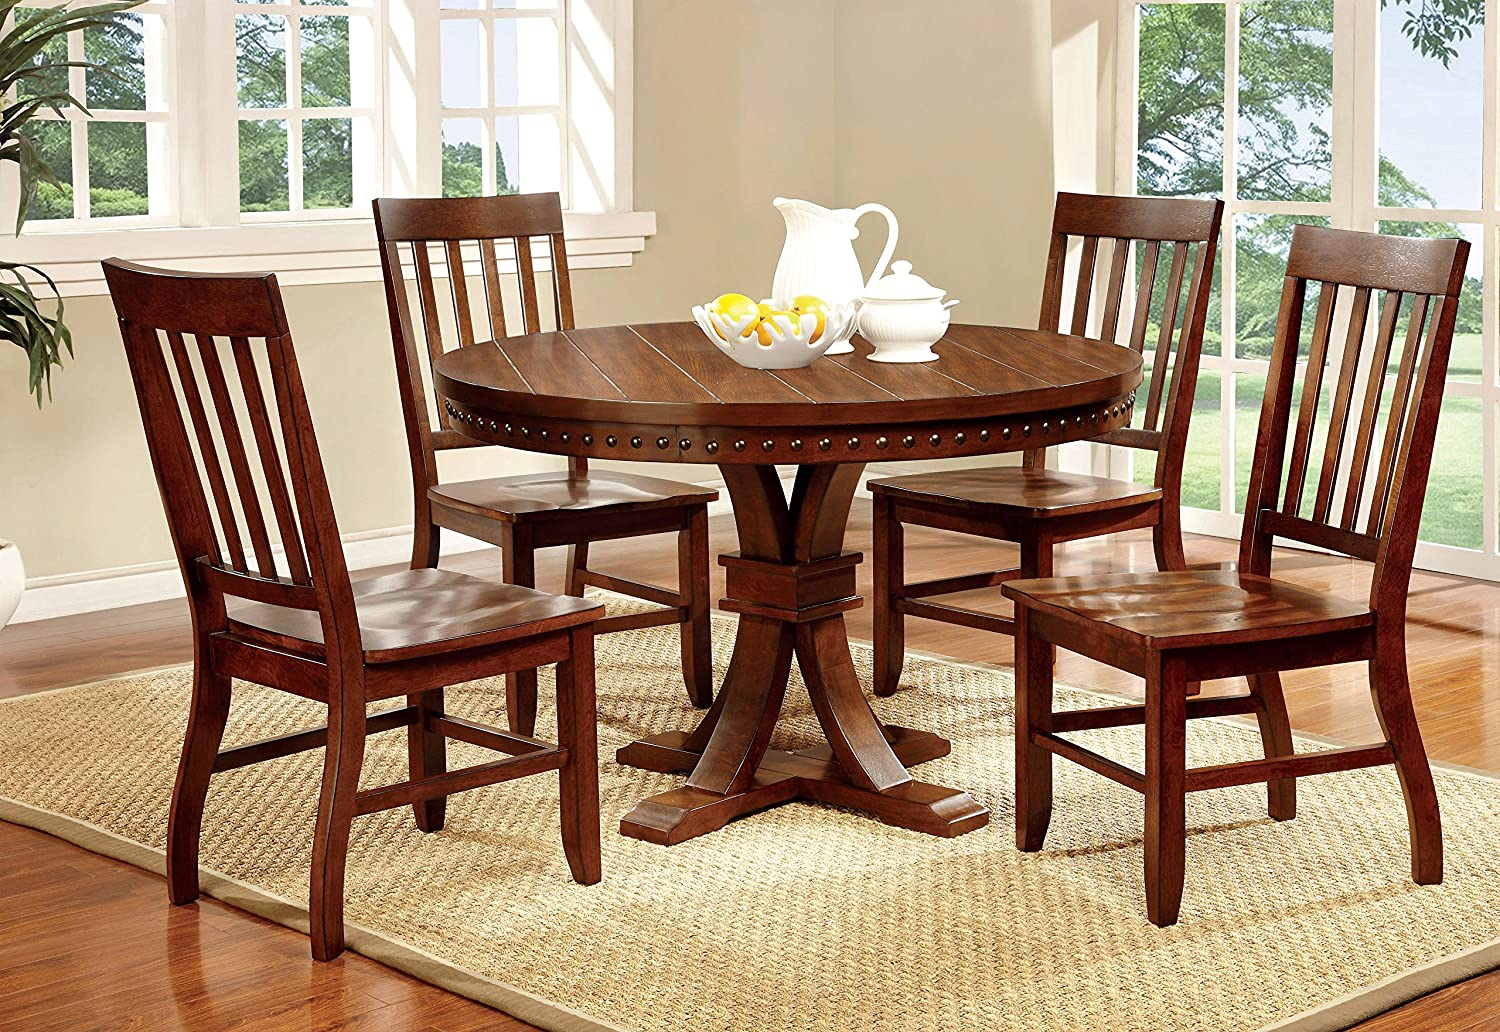 Amazon.com - Furniture of America Castile 5-Piece Transitional Round Dining Table Set Dark Oak - Table \u0026 Chair Sets & Amazon.com - Furniture of America Castile 5-Piece Transitional Round ...